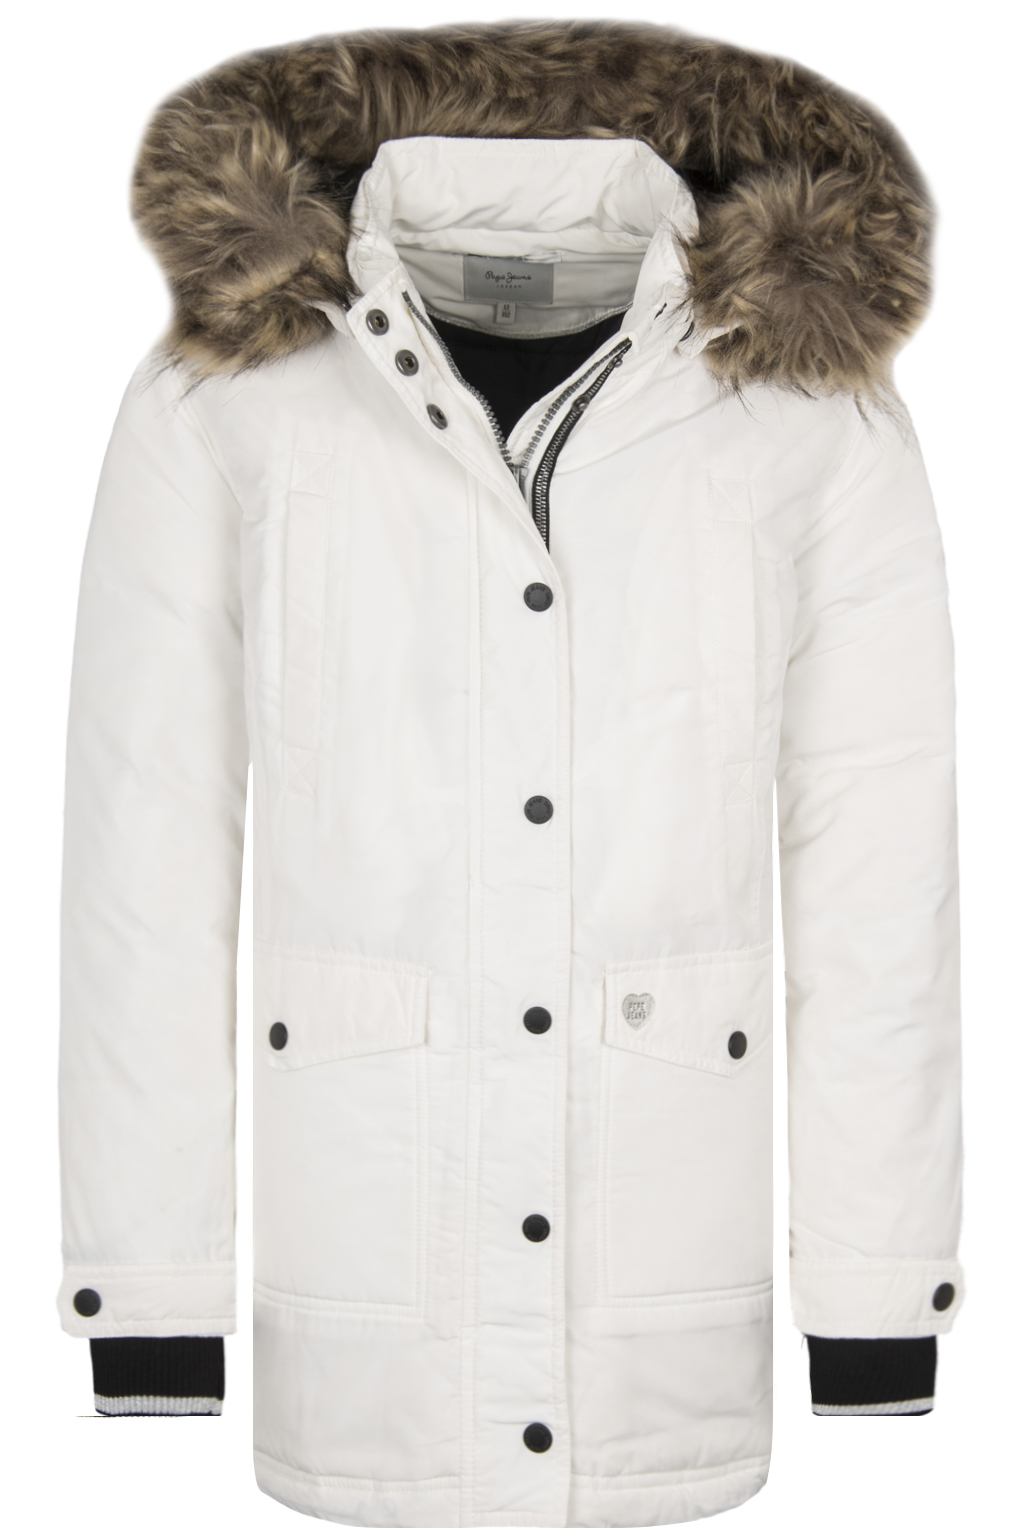 PEPE JEANS MARIANNE ΜΠΟΥΦΑΝ ΠΑΙΔΙΚΟ ΚΟΡΙΤΣΙ PG400752-808 ... dcbe87ac38d